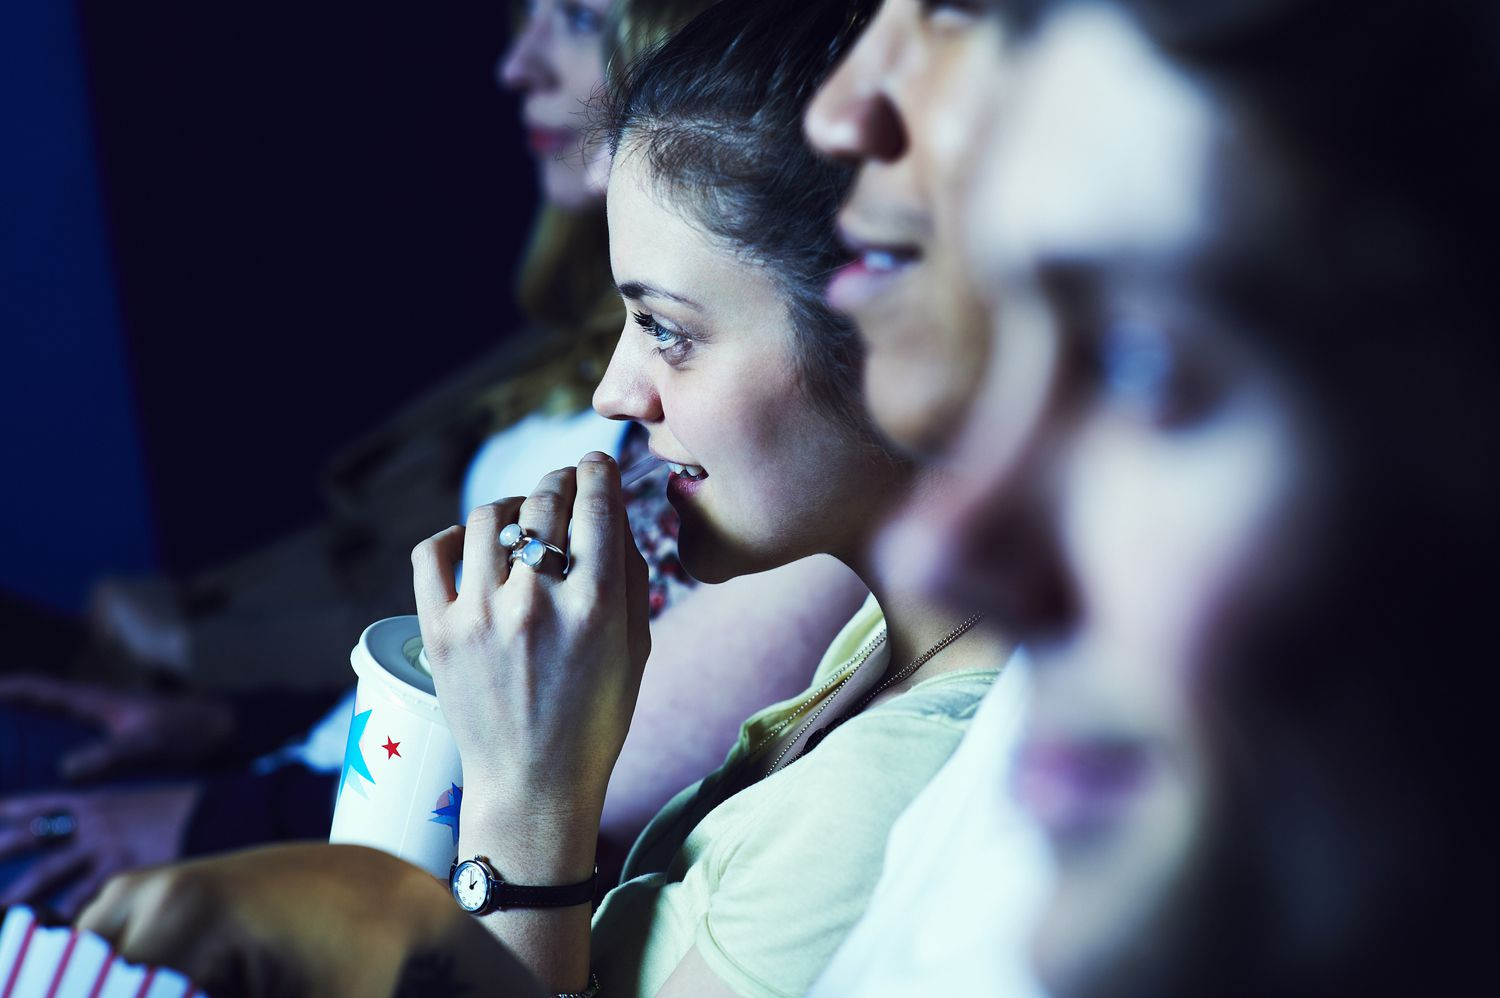 New Generation Associating More To Private Cinema Viewing